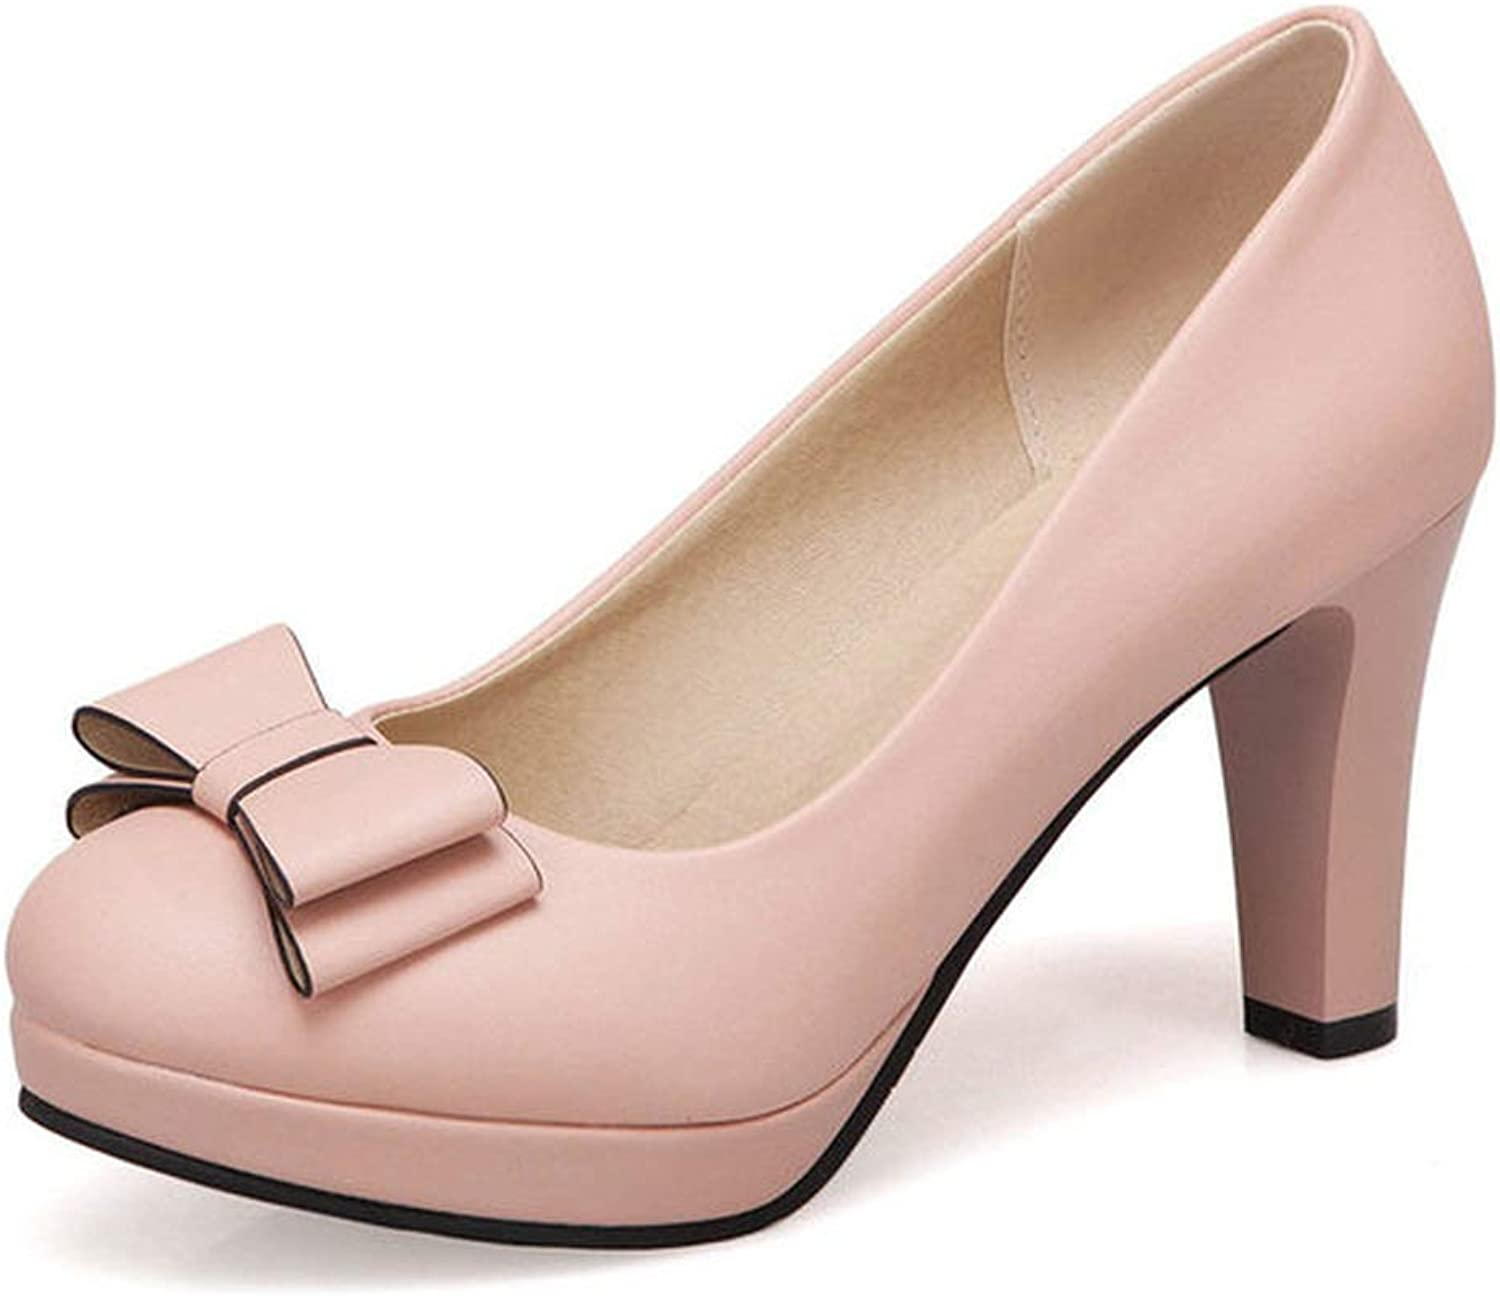 Meiguiyuan 2019 Women shoes Pu Leather Square High Heel Round Toe Slip on Bow Tie Women Pumps